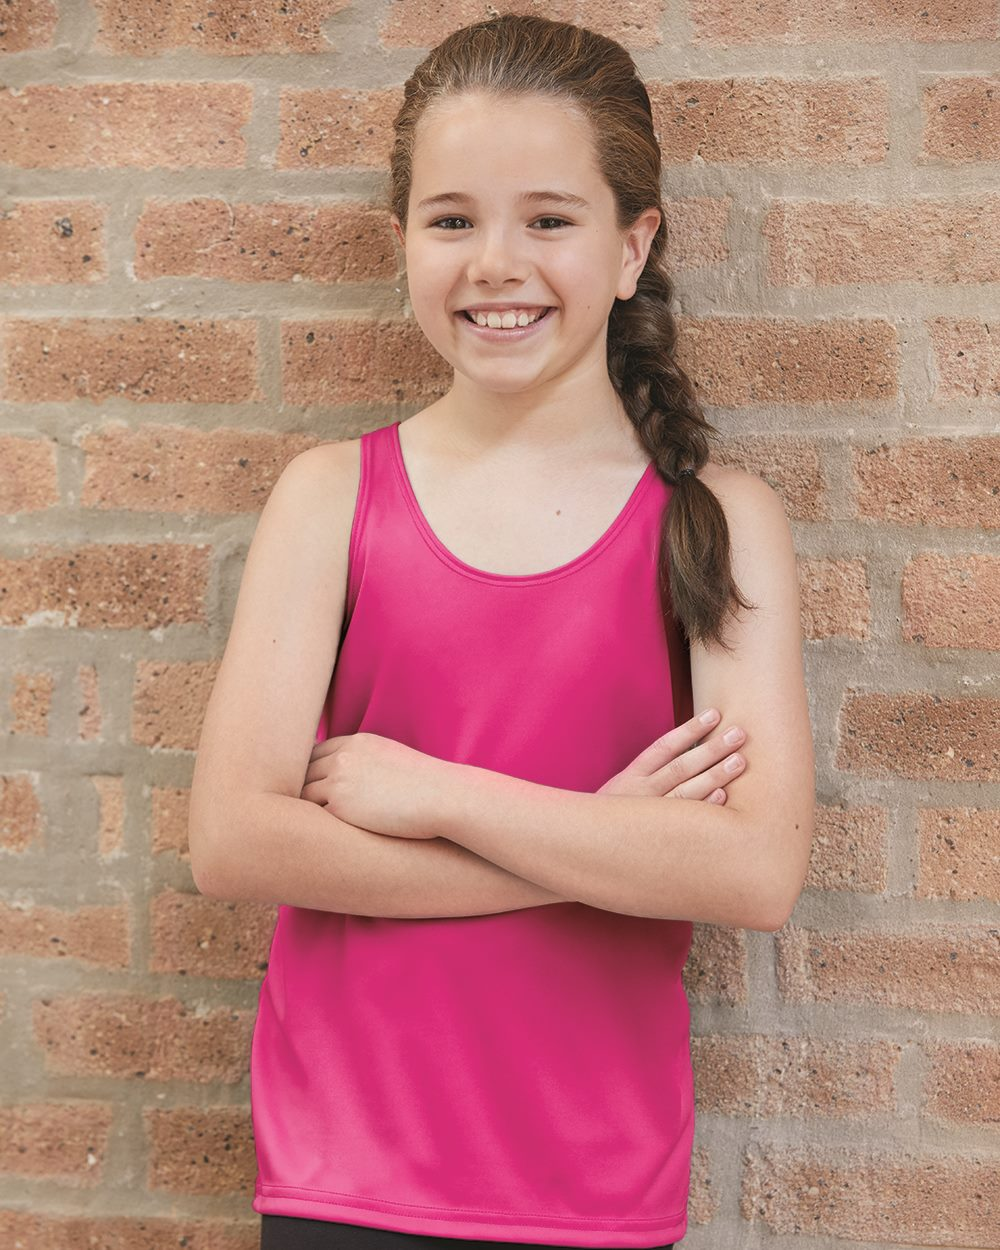 Badger 2166 - B-Core Girls' Racerback Tank Top